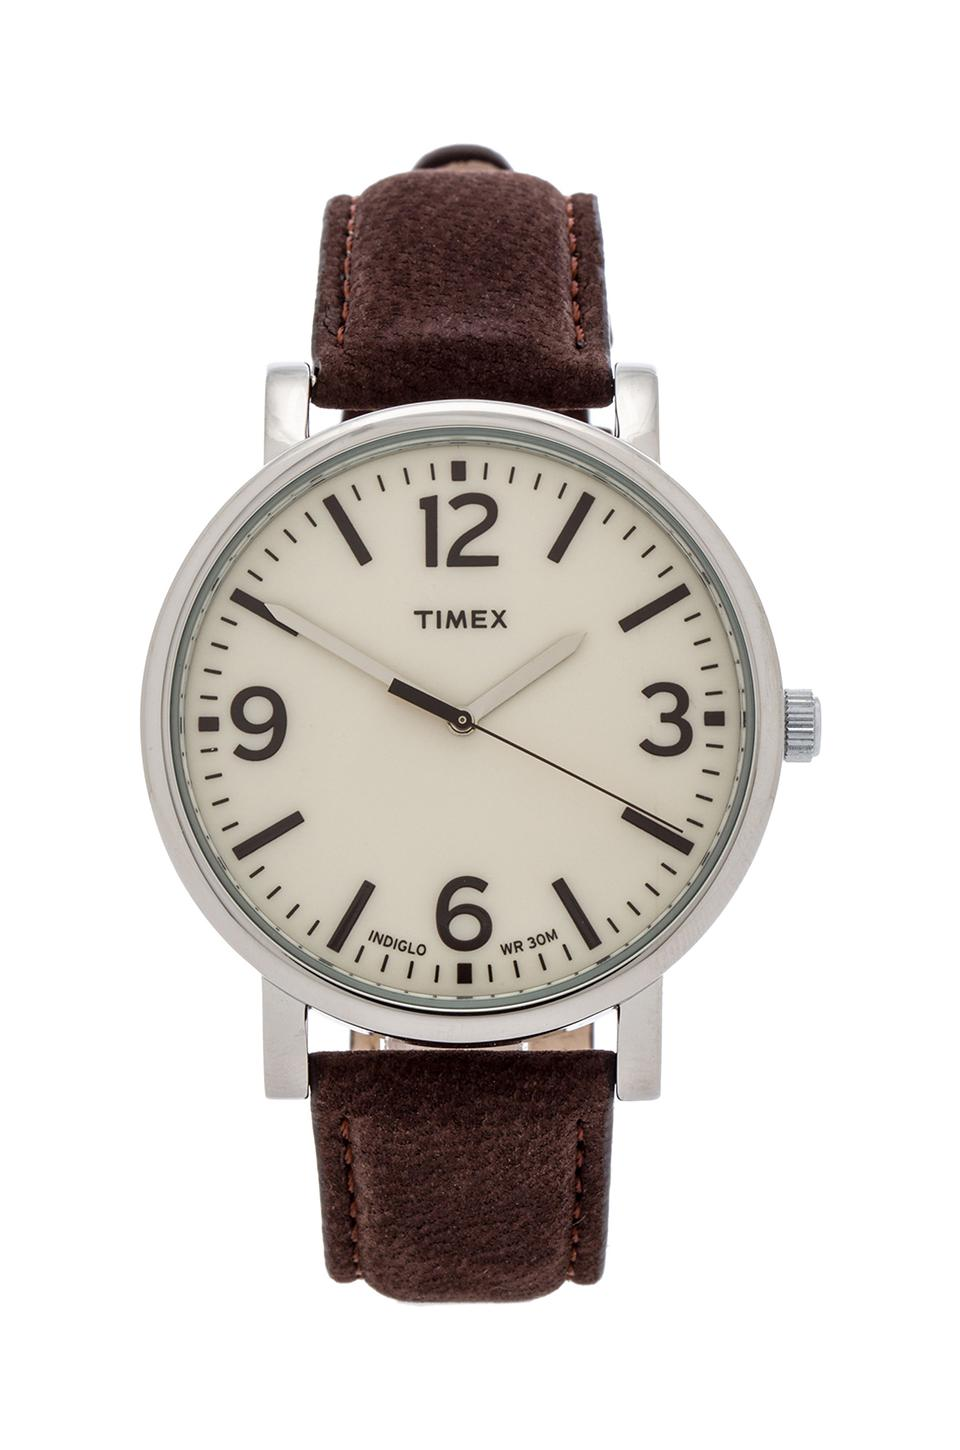 Timex Originals Classic Round 42mm in Silver & Tan & Dark Brown